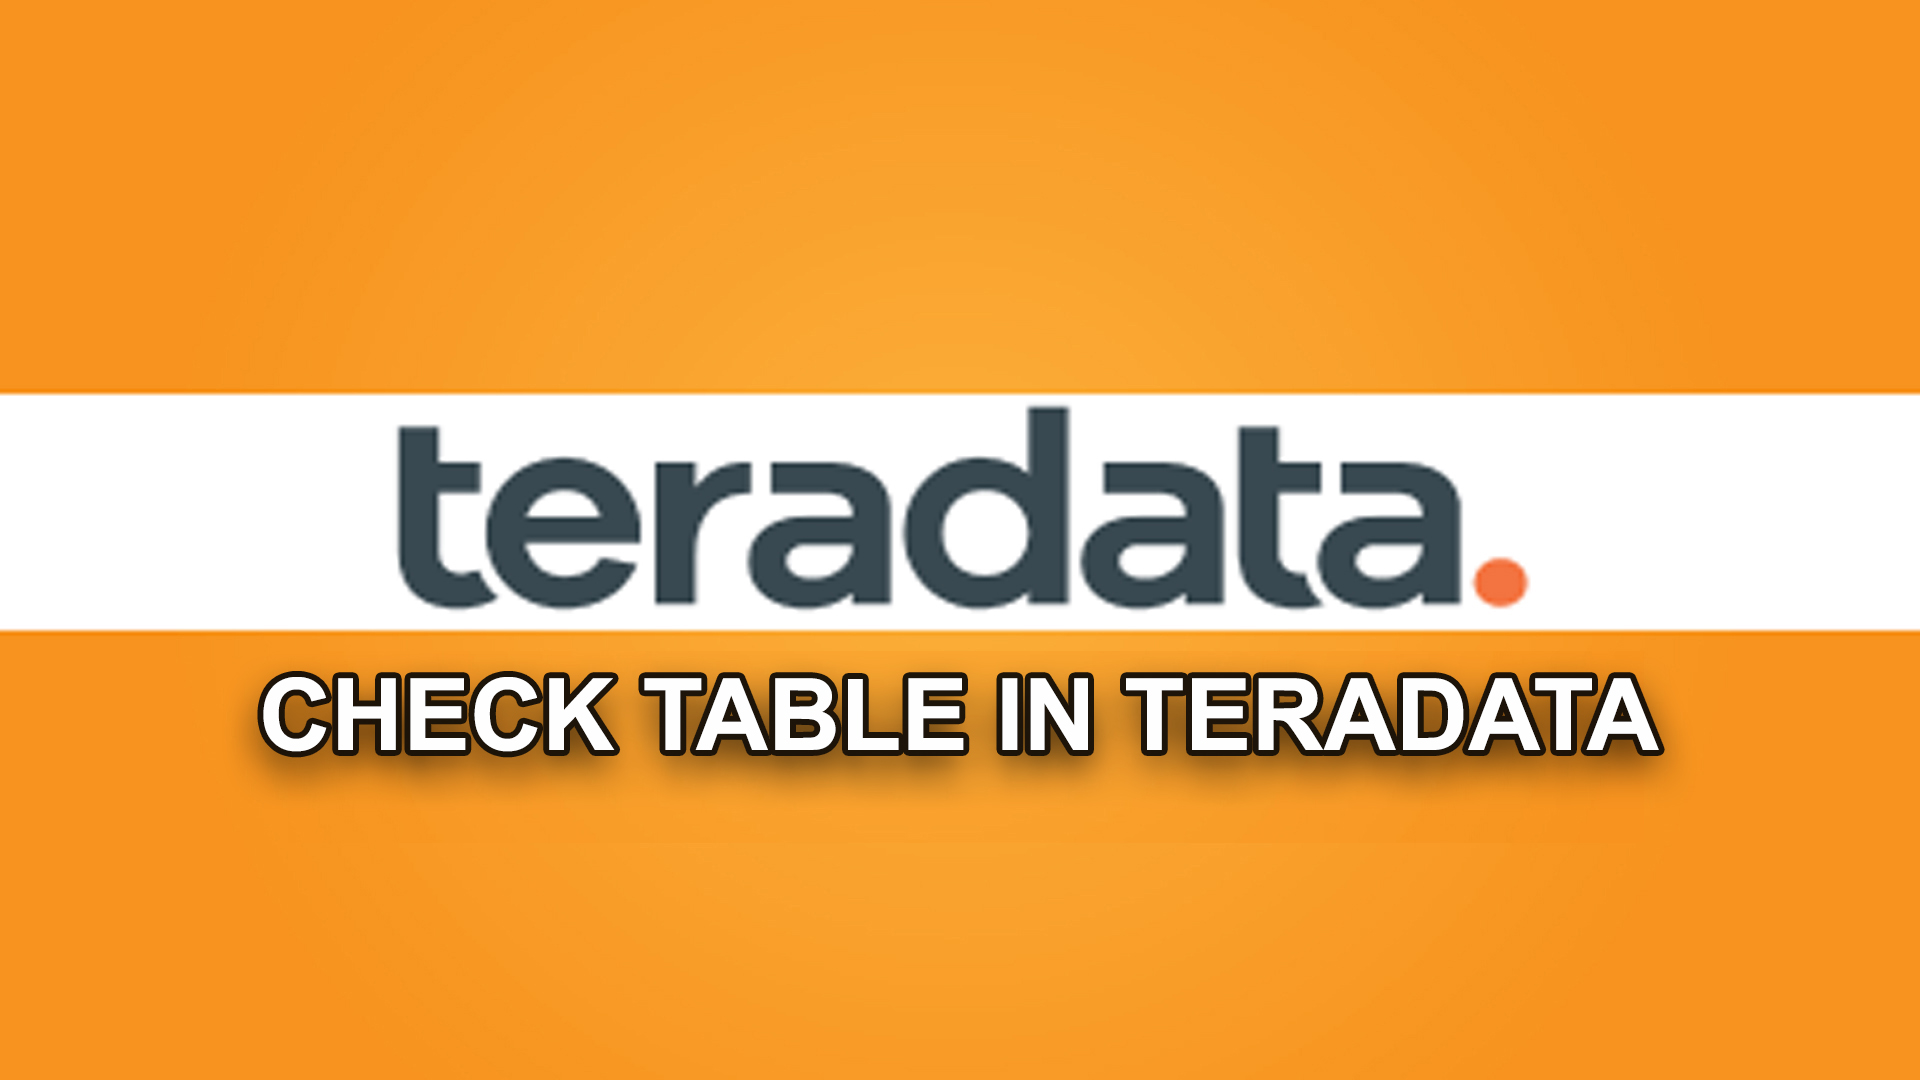 CHECK TABLE IN TERADATA